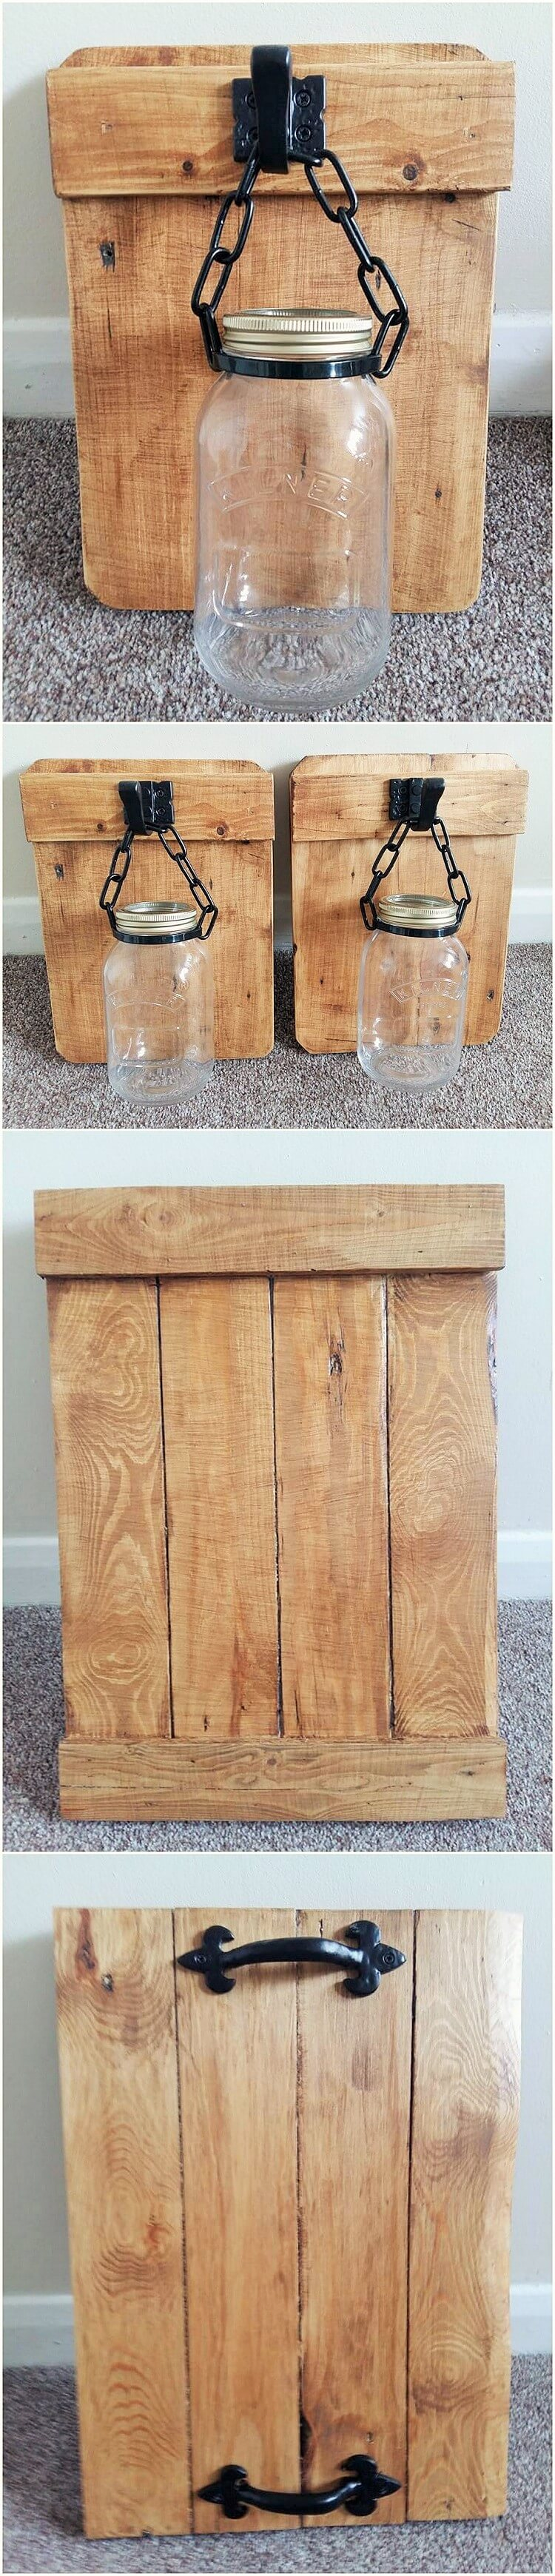 Old-Pallet- Diy-Recycle-Things-Projects-16